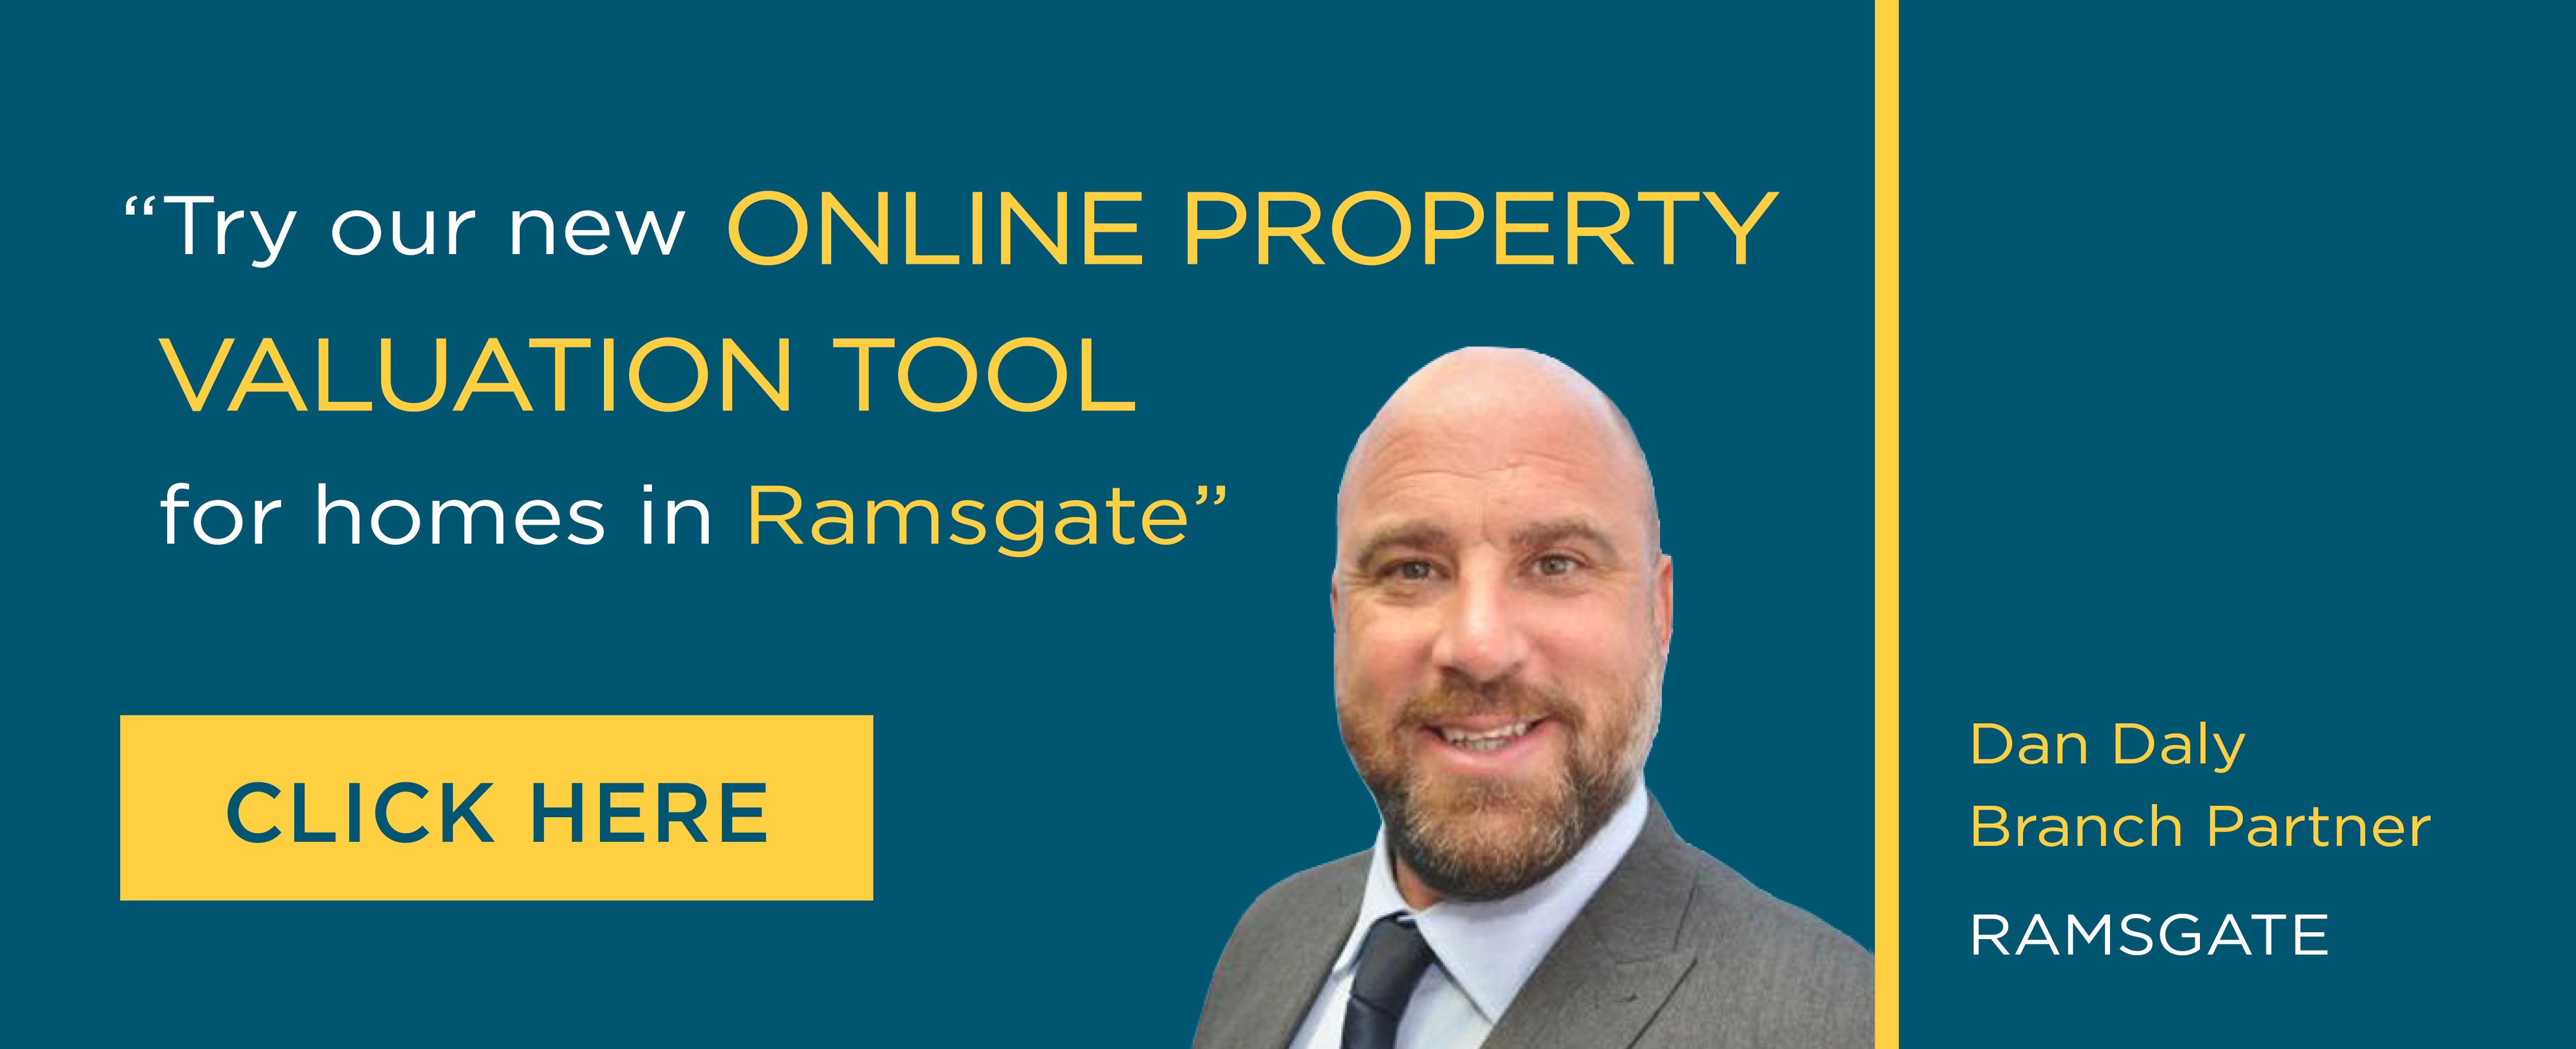 Online Valuation Tool website banner Ramsgate